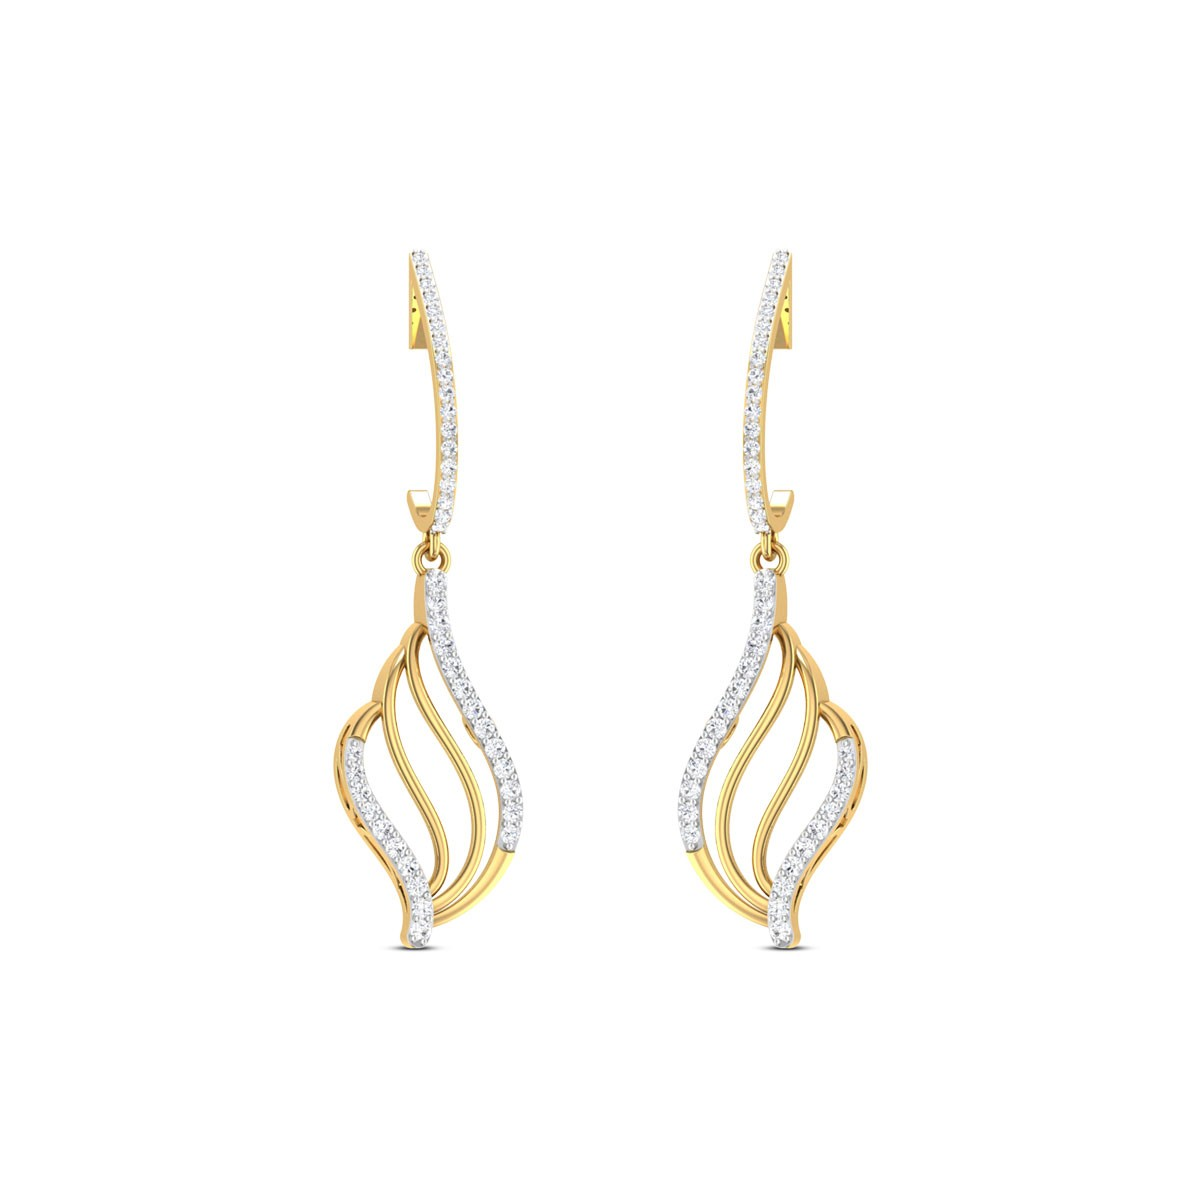 Chantal Diamond Earrings